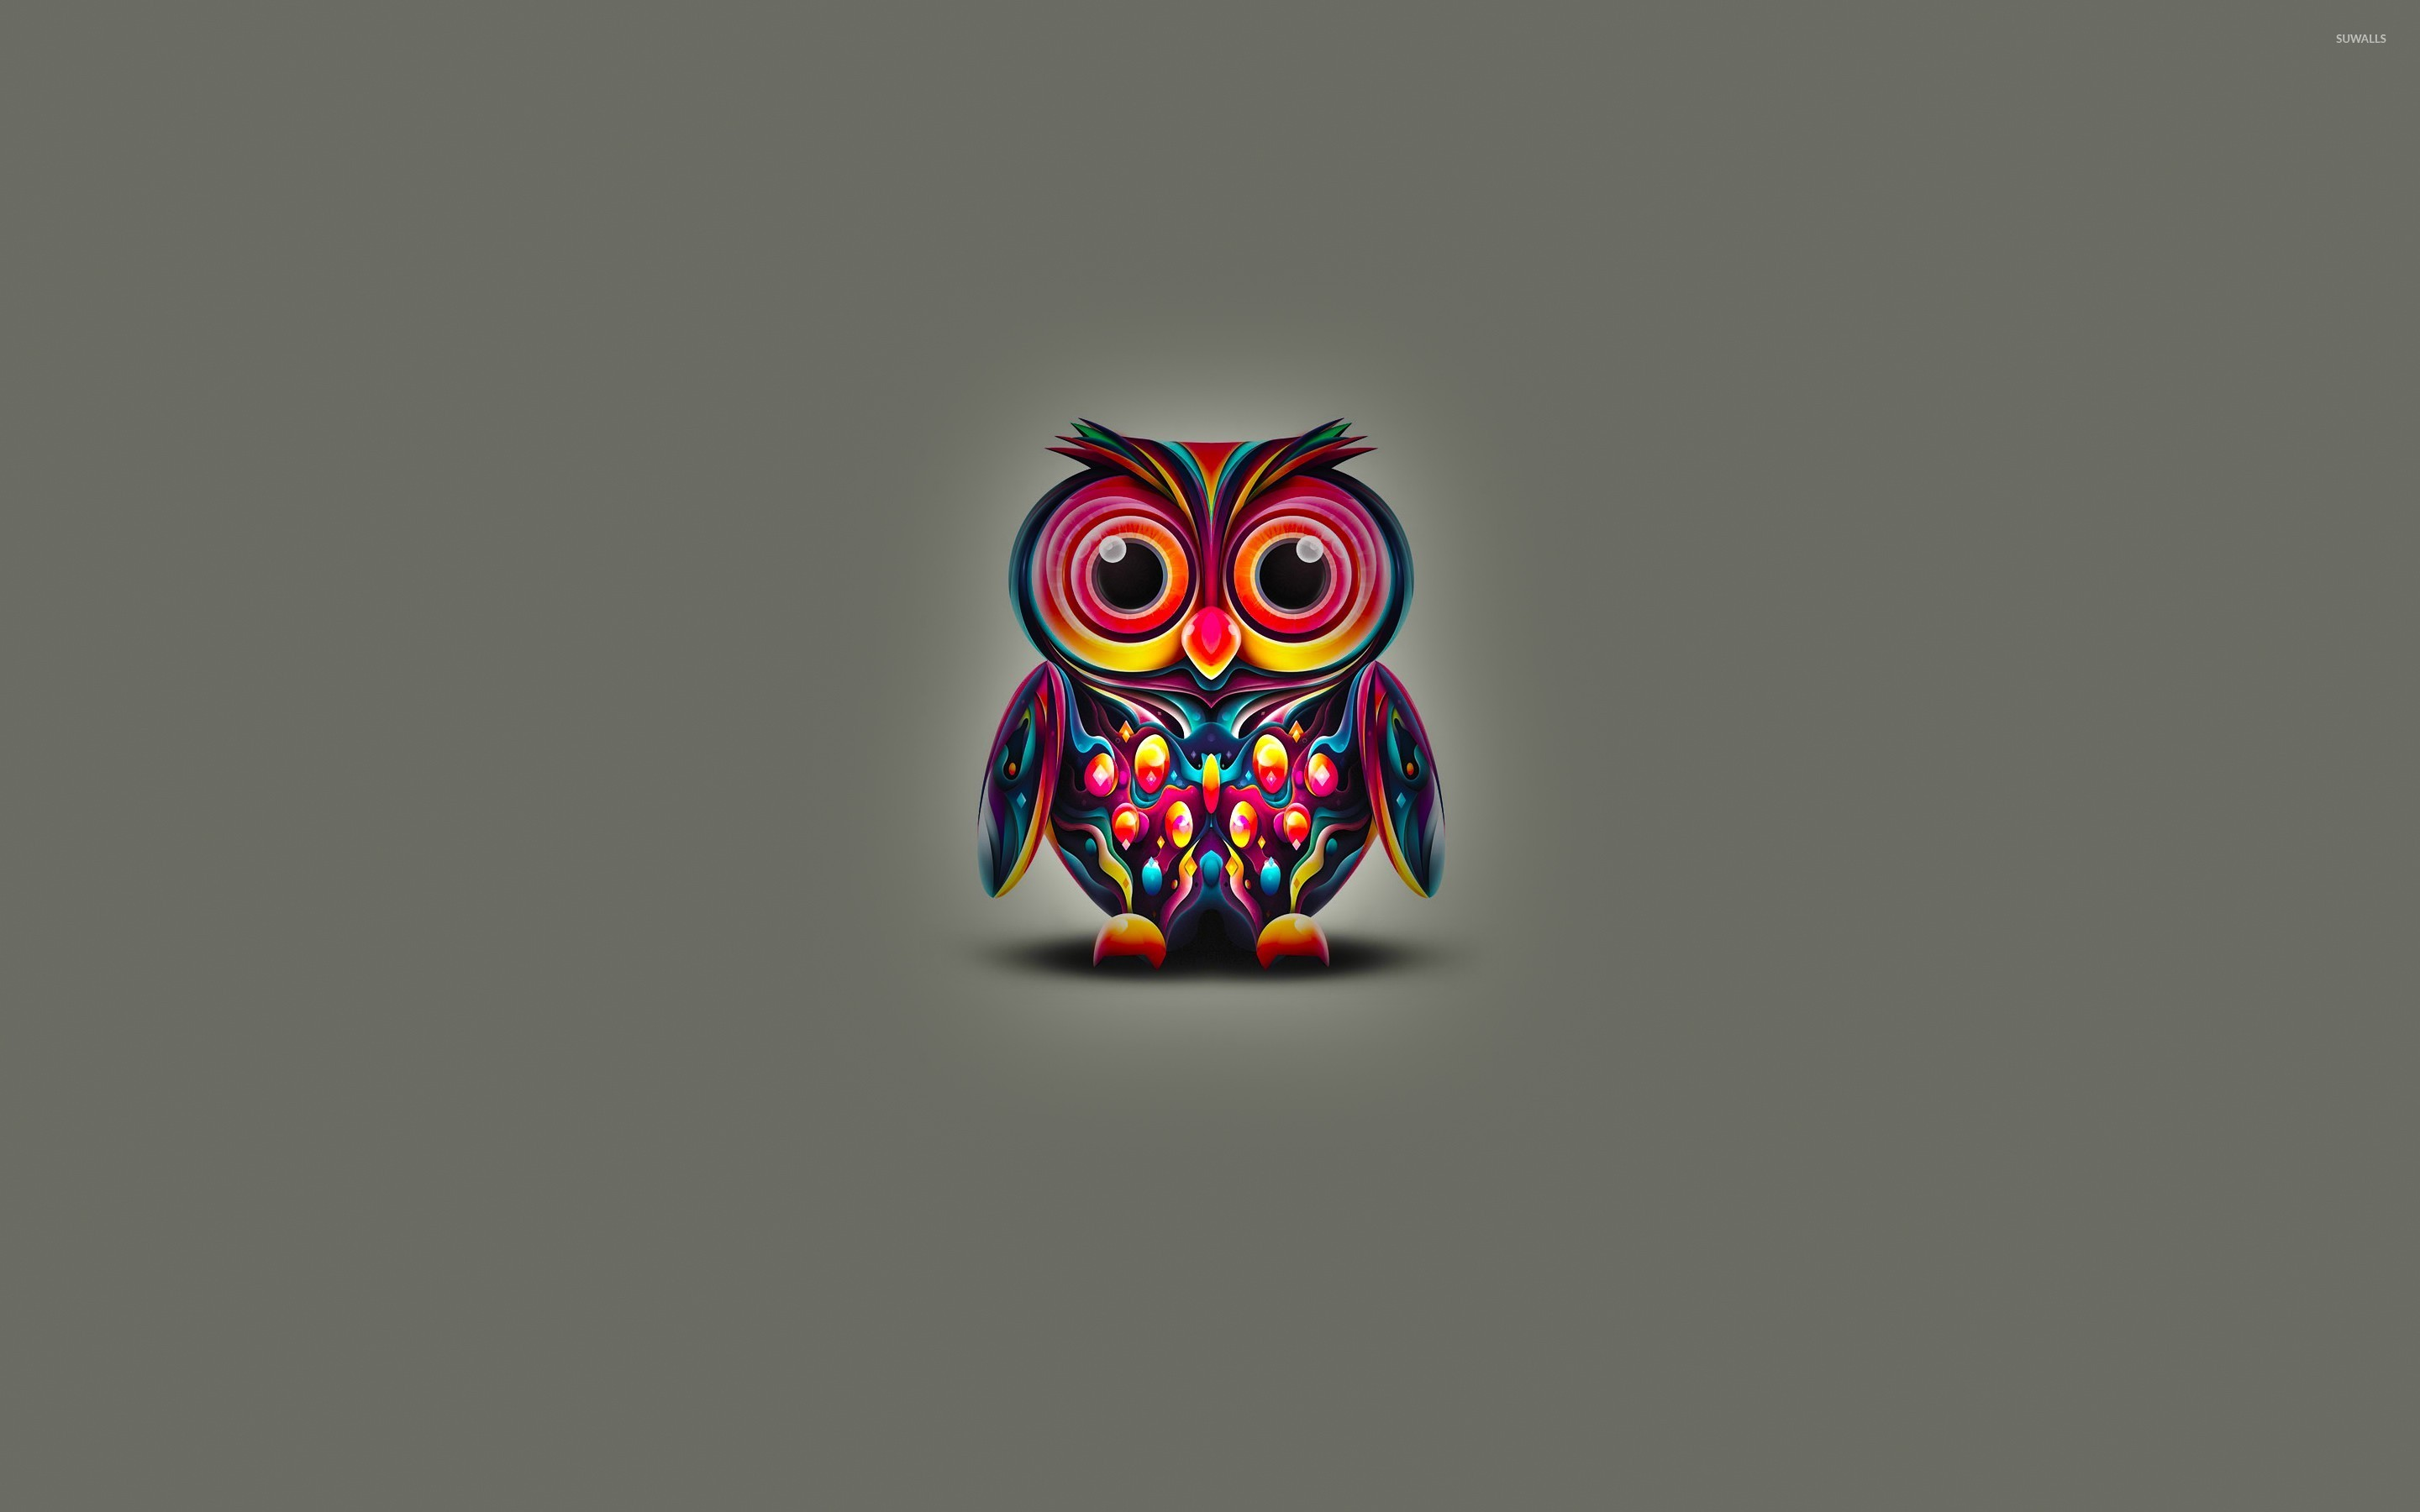 Cute Owl With Colorful Bright Feathers Wallpaper